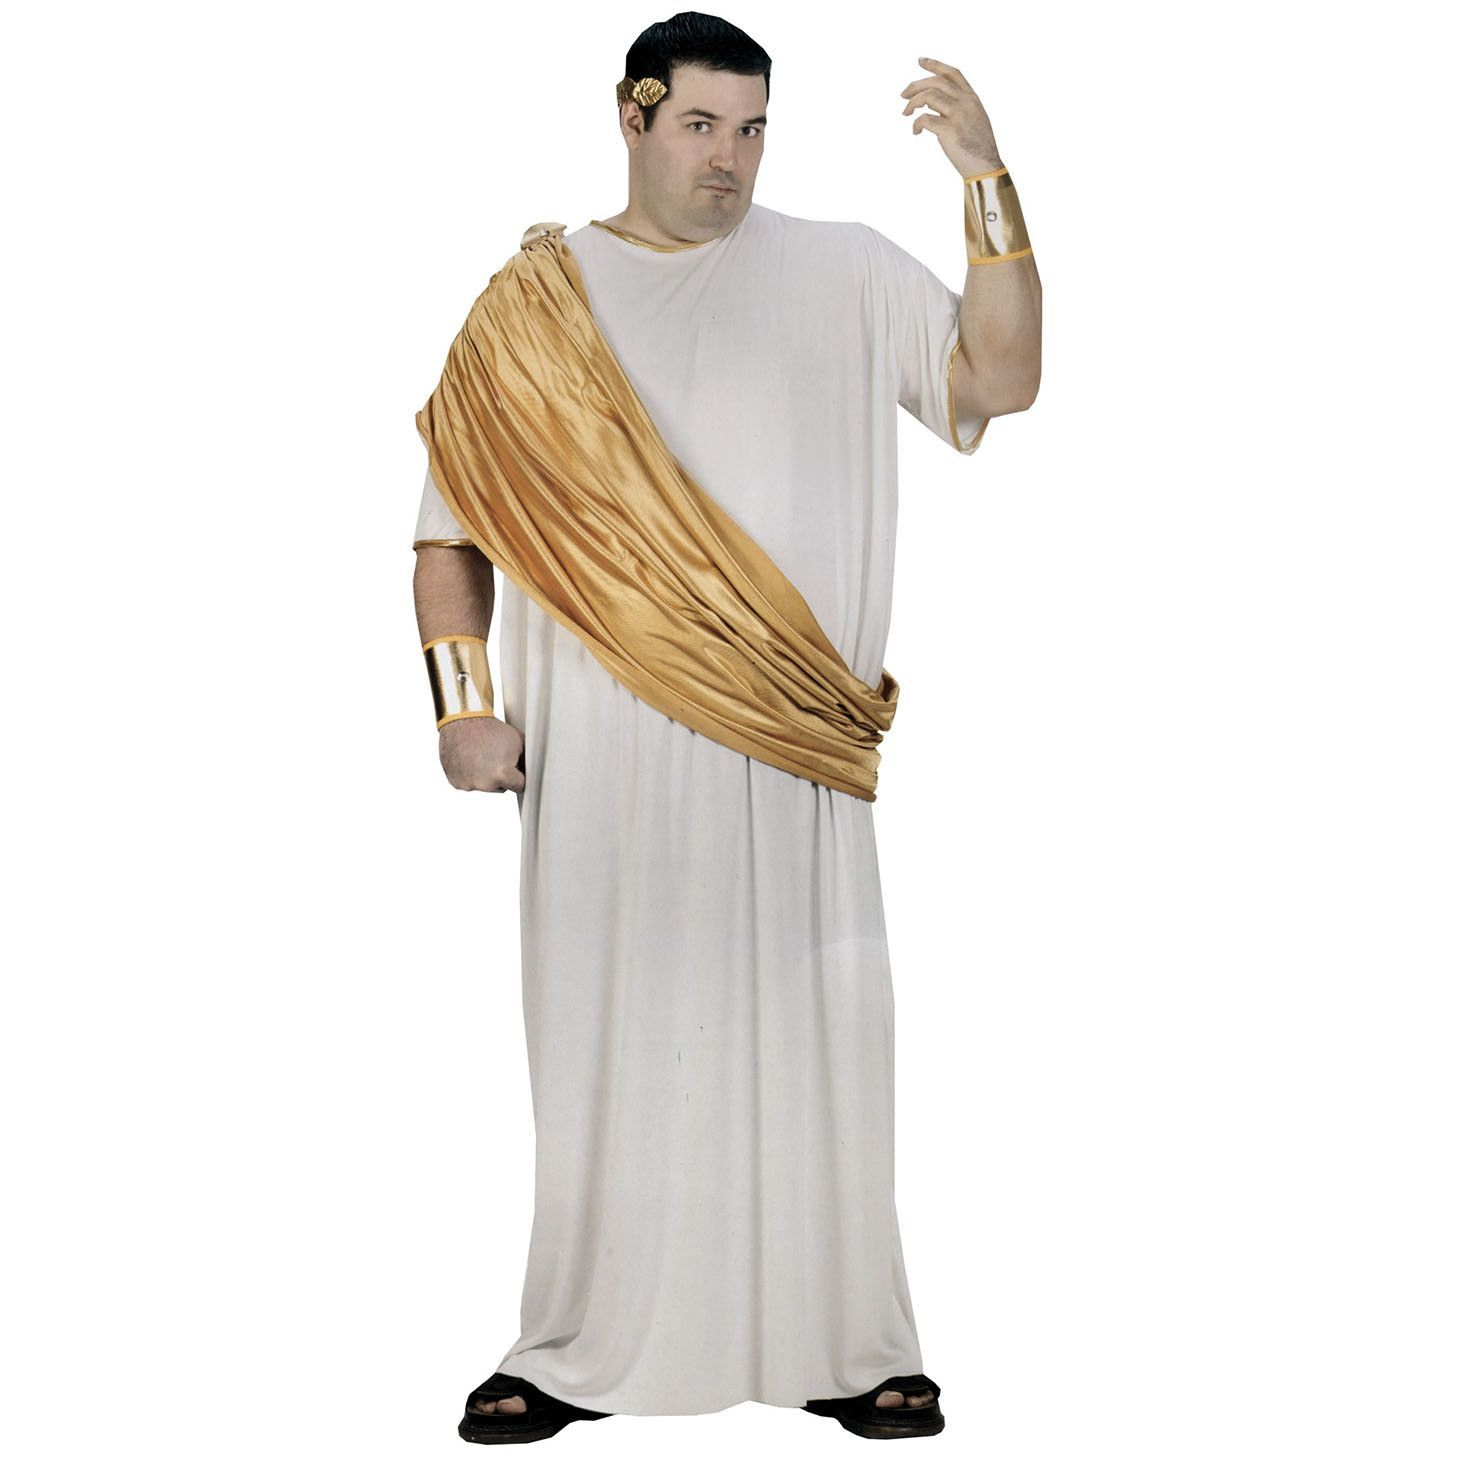 hail caesar they will bow at your greatness in this regal white